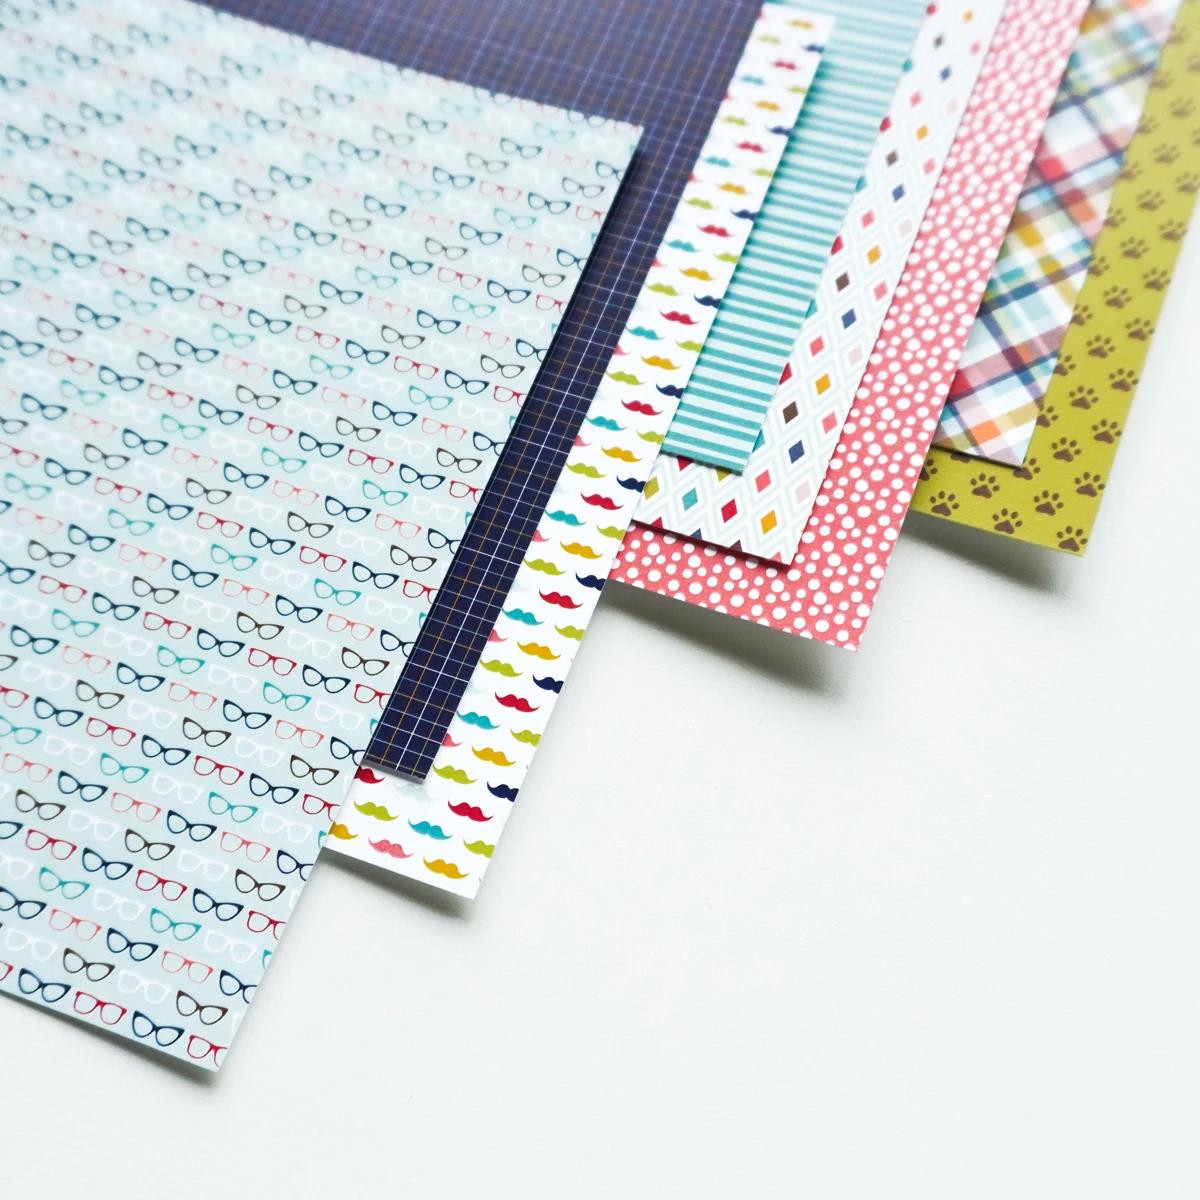 Hipster, Catherine Pooler Patterned Paper - 819447027972